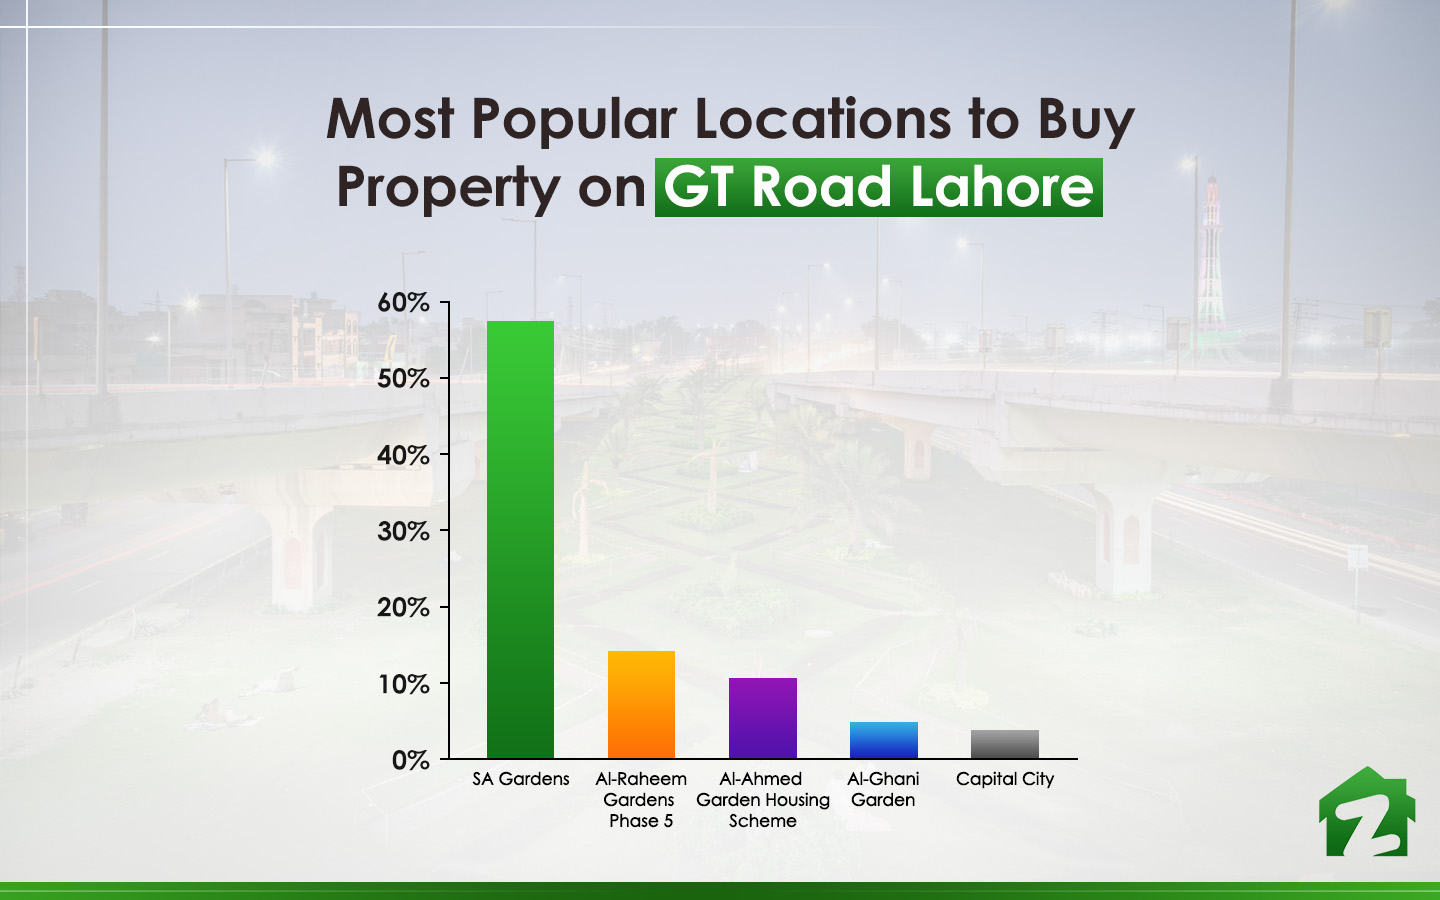 Most searched locations on GT Road for buying property